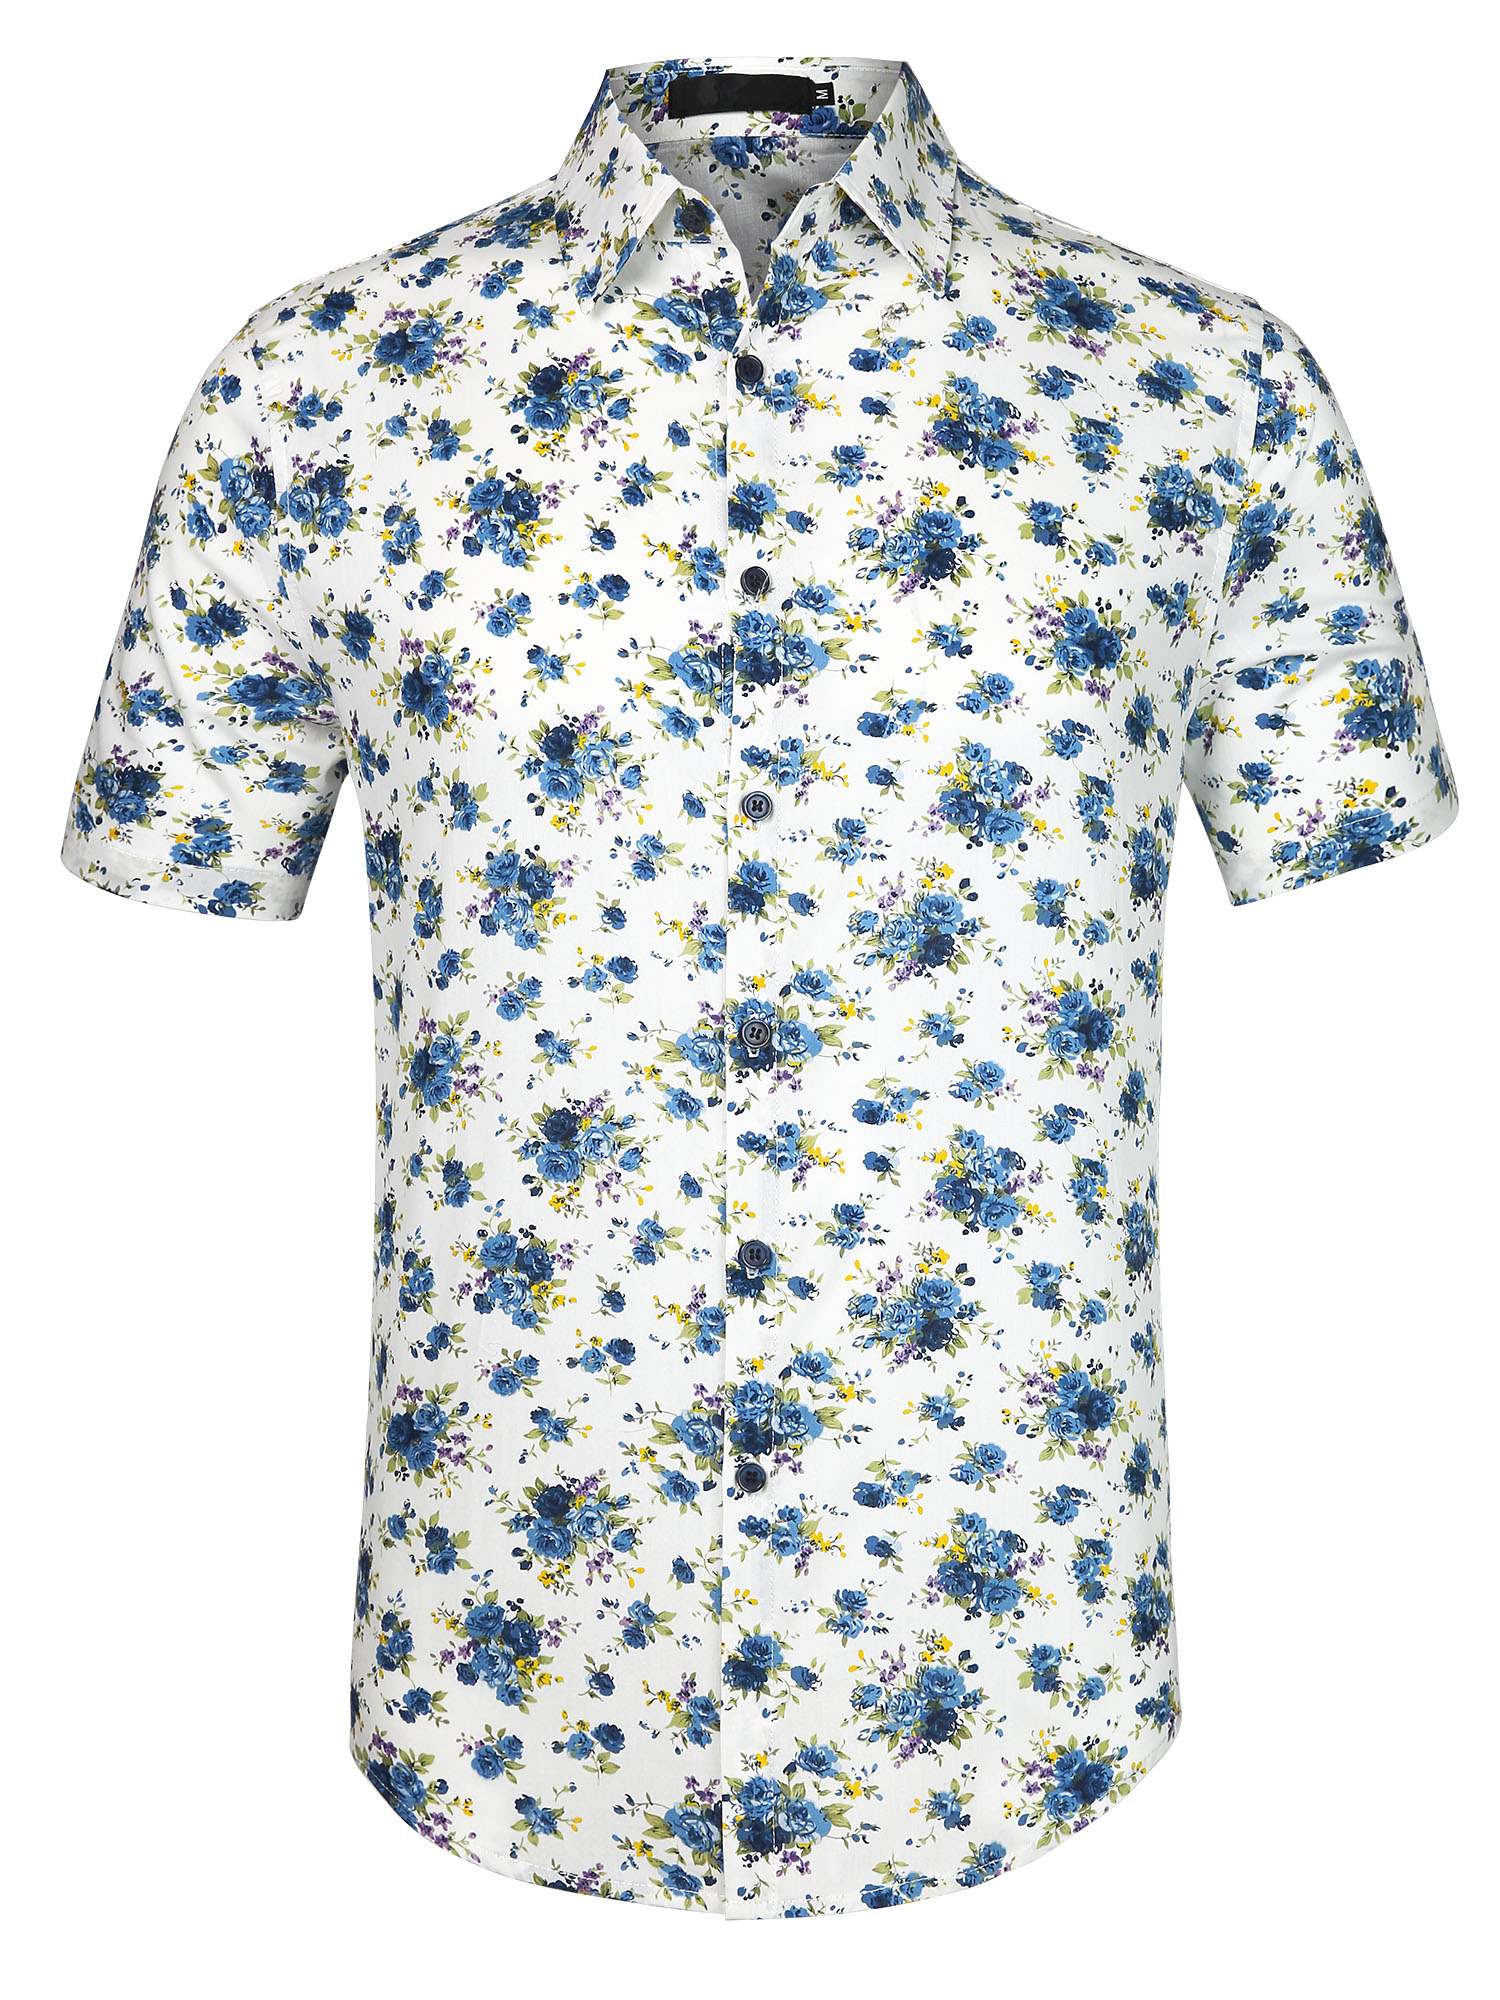 Men Point Collar Short Sleeve Single Breasted Floral Prints Shirt Off White Medium